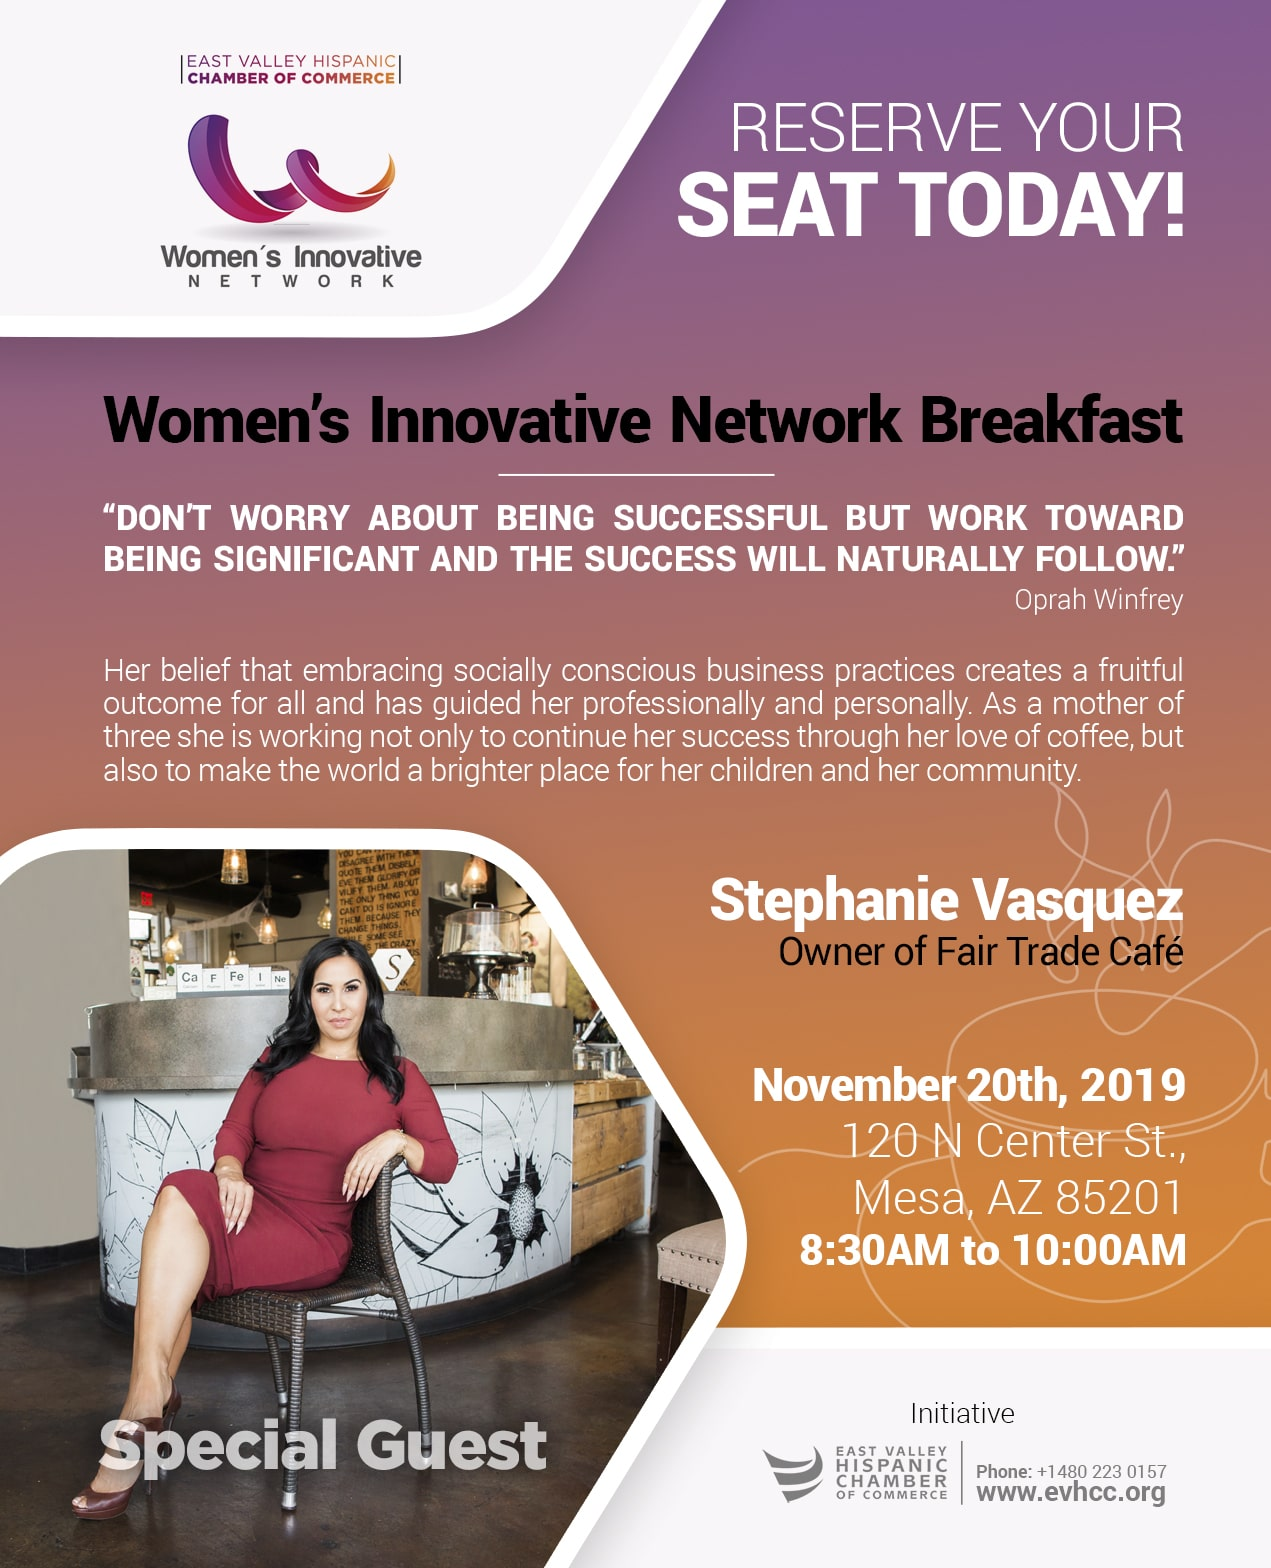 Women's Innovative Breakfast Networking November 20, 2019 by the East Valley Hispanic Chamber of Commerce